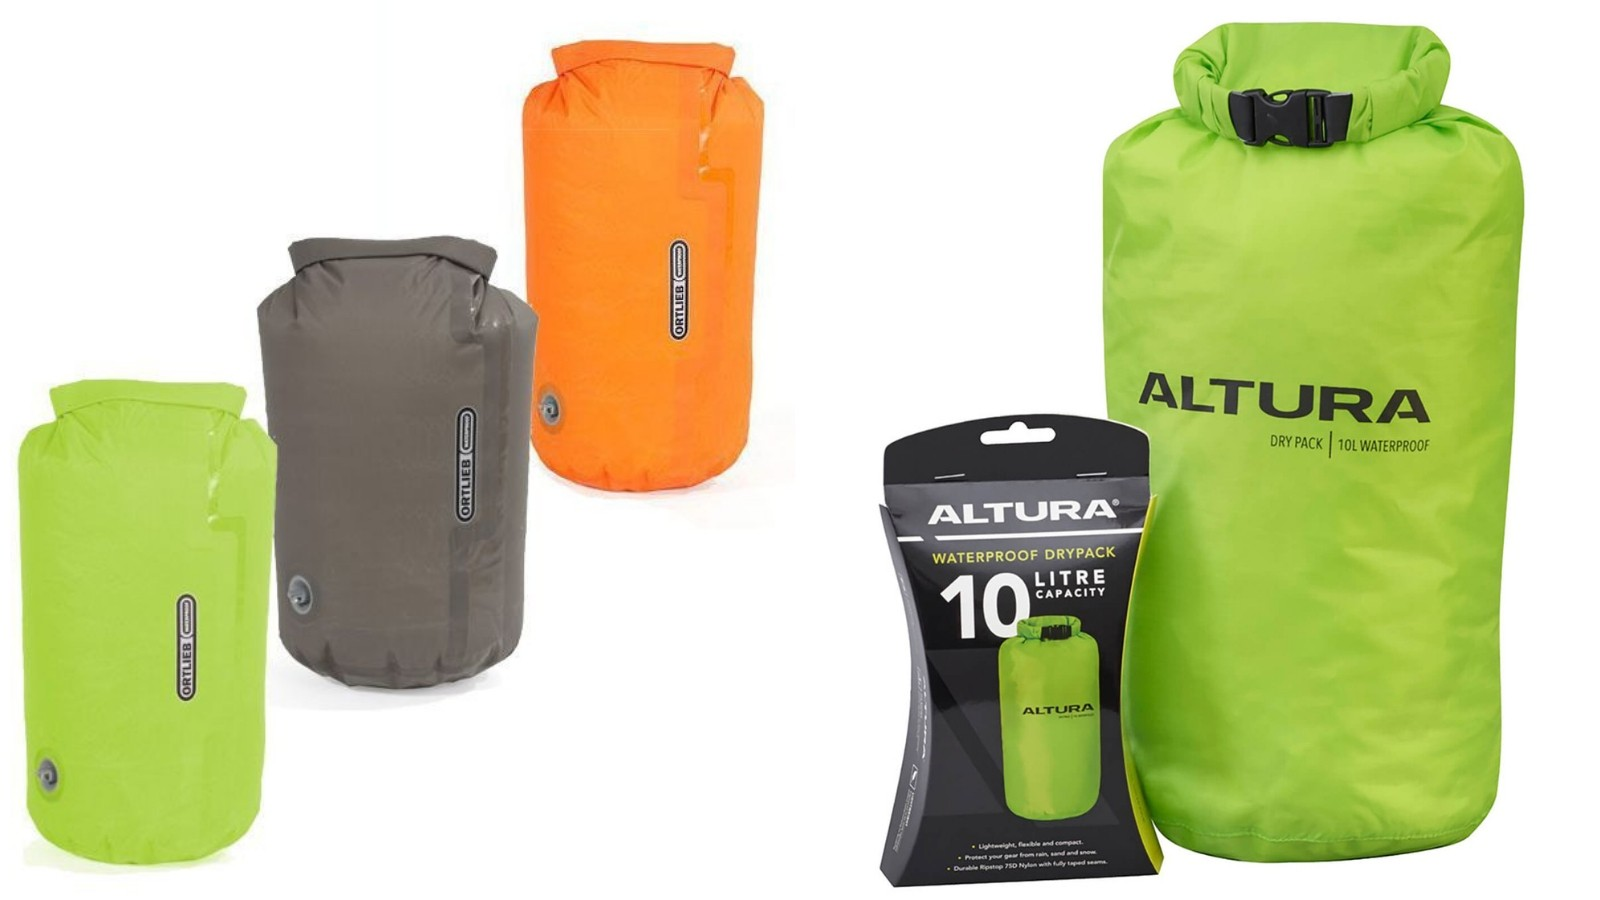 Drybags are a great way to keep your stuff safe, and make great pillows